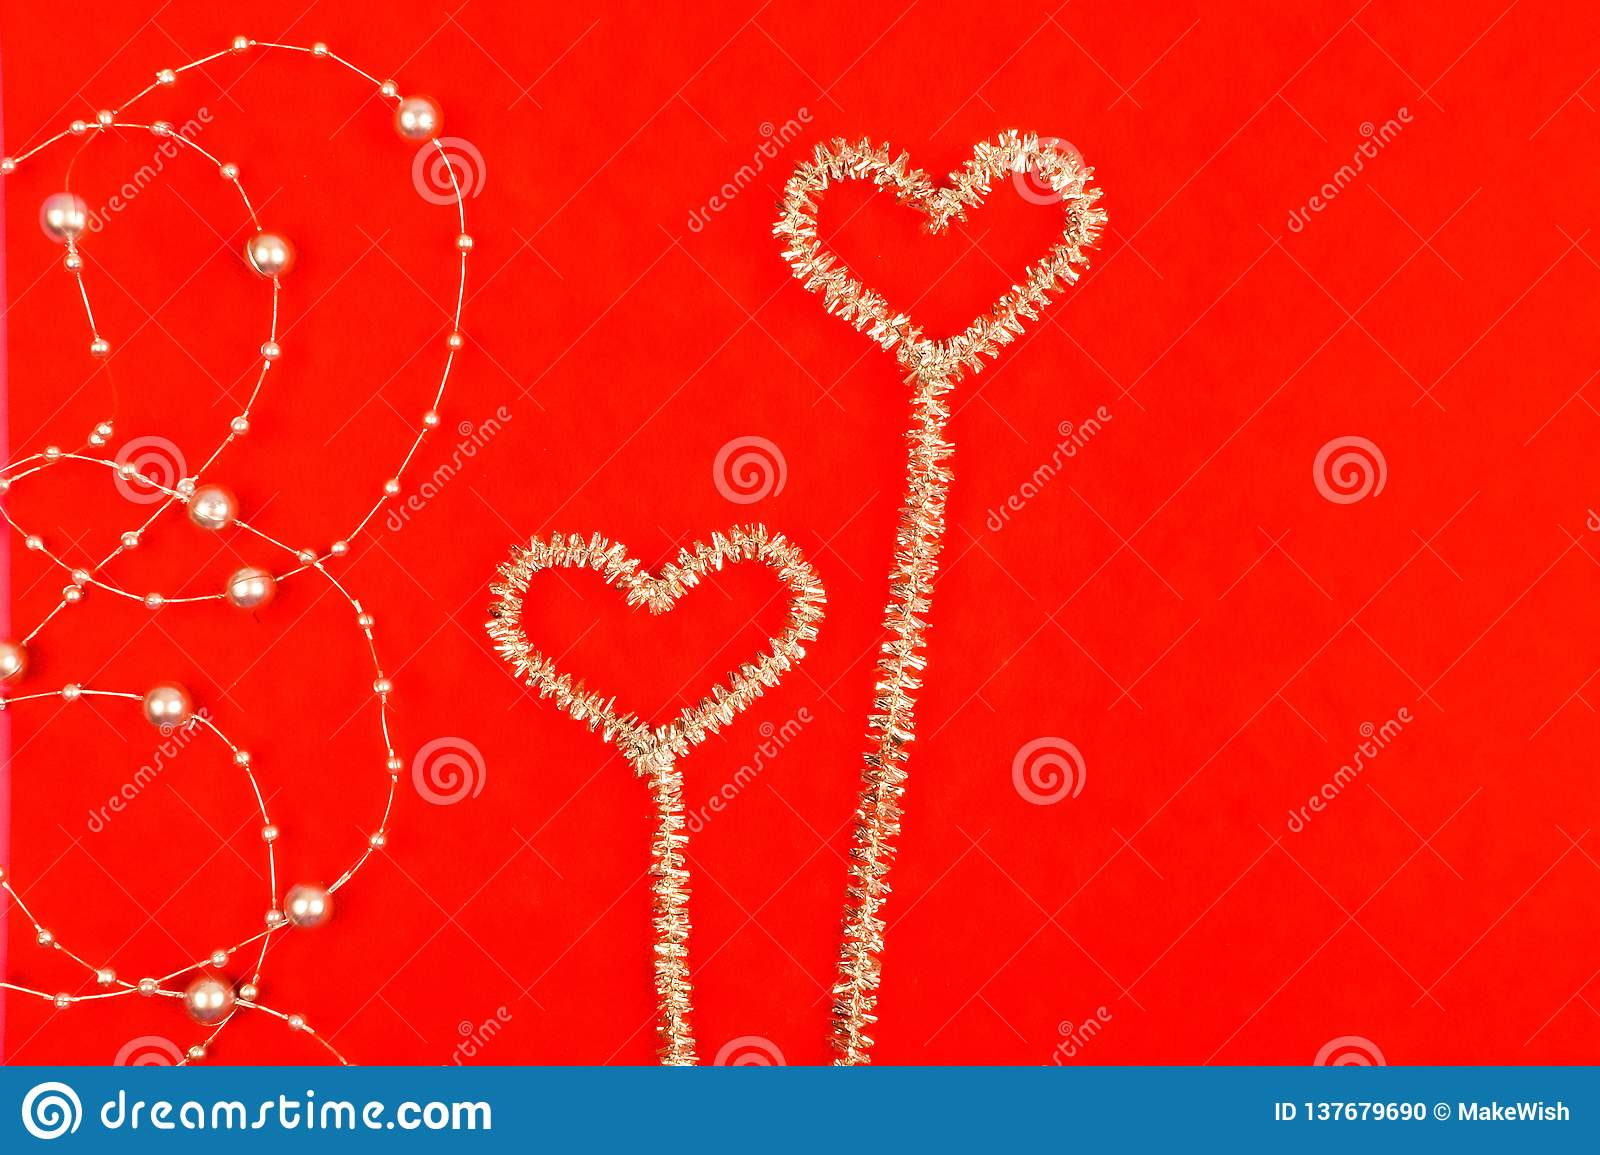 Noctilucent hearts with beads on a red background